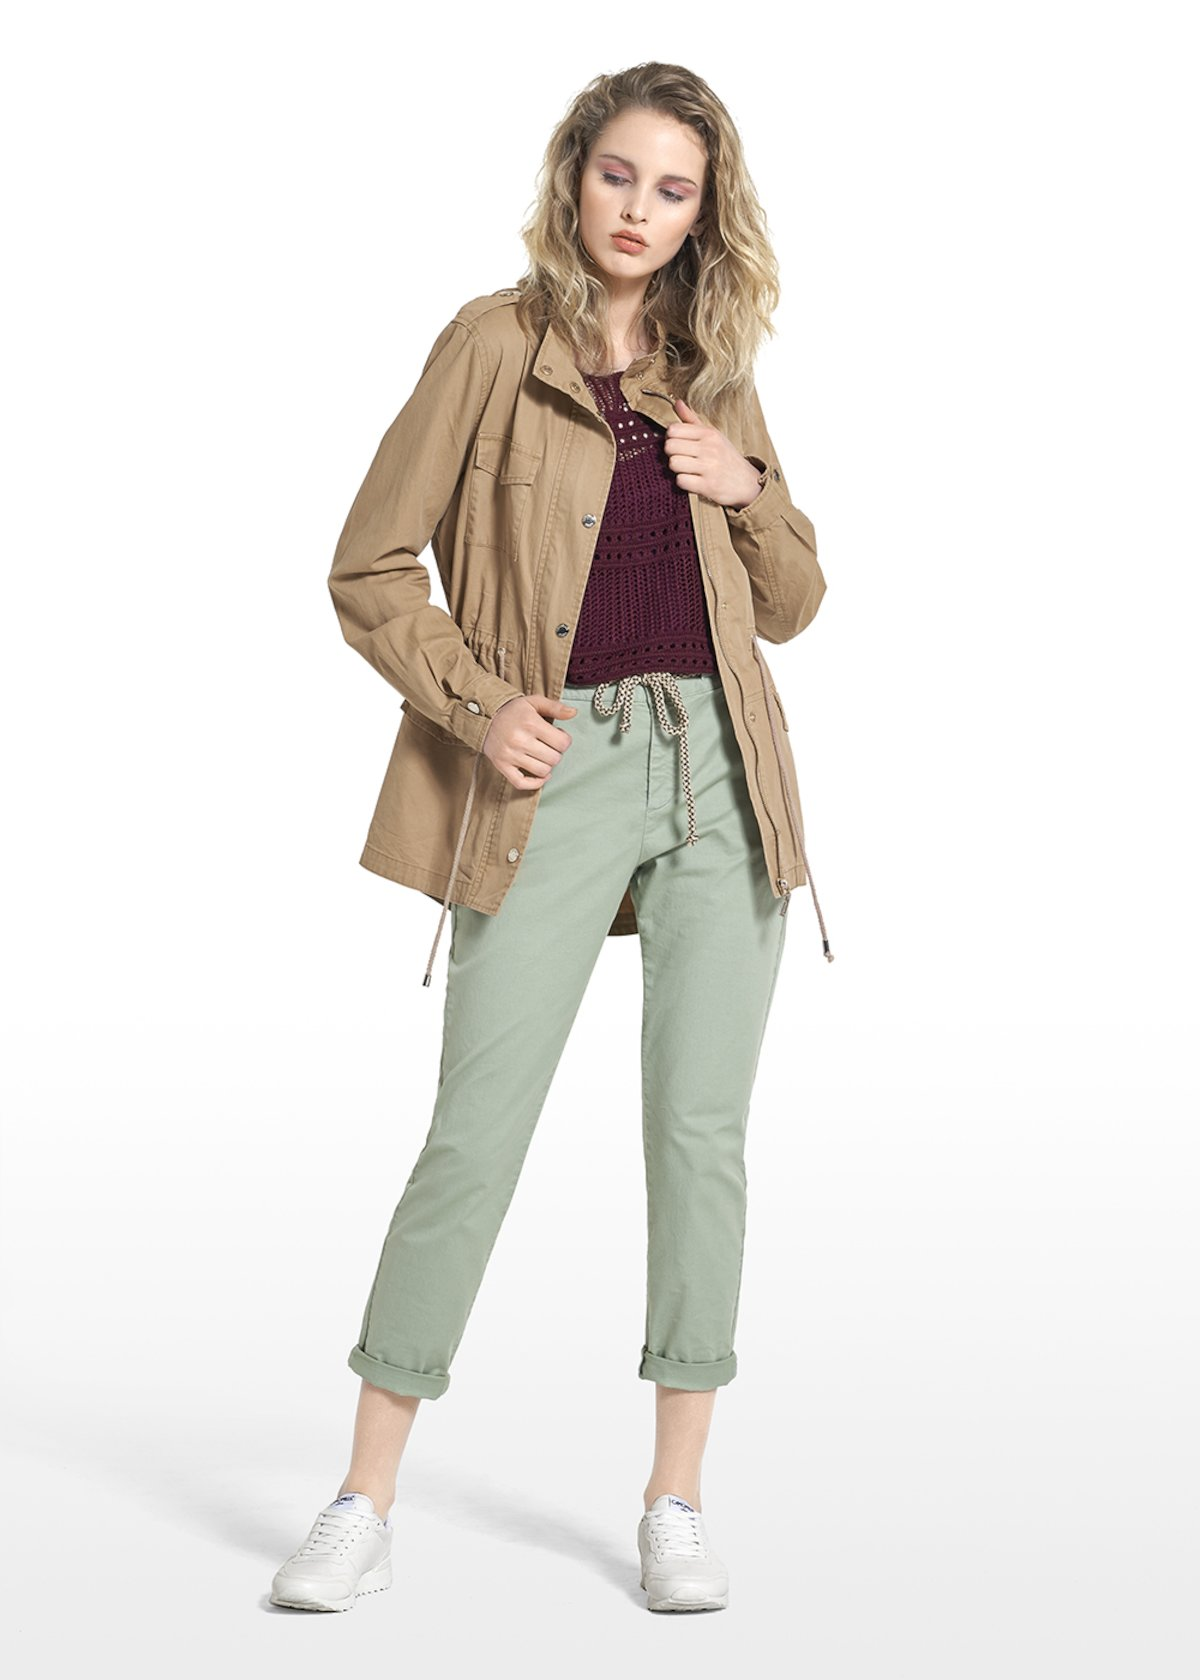 Gayl jacket Saharan model with metallic details - Tobacco - Woman - Category image